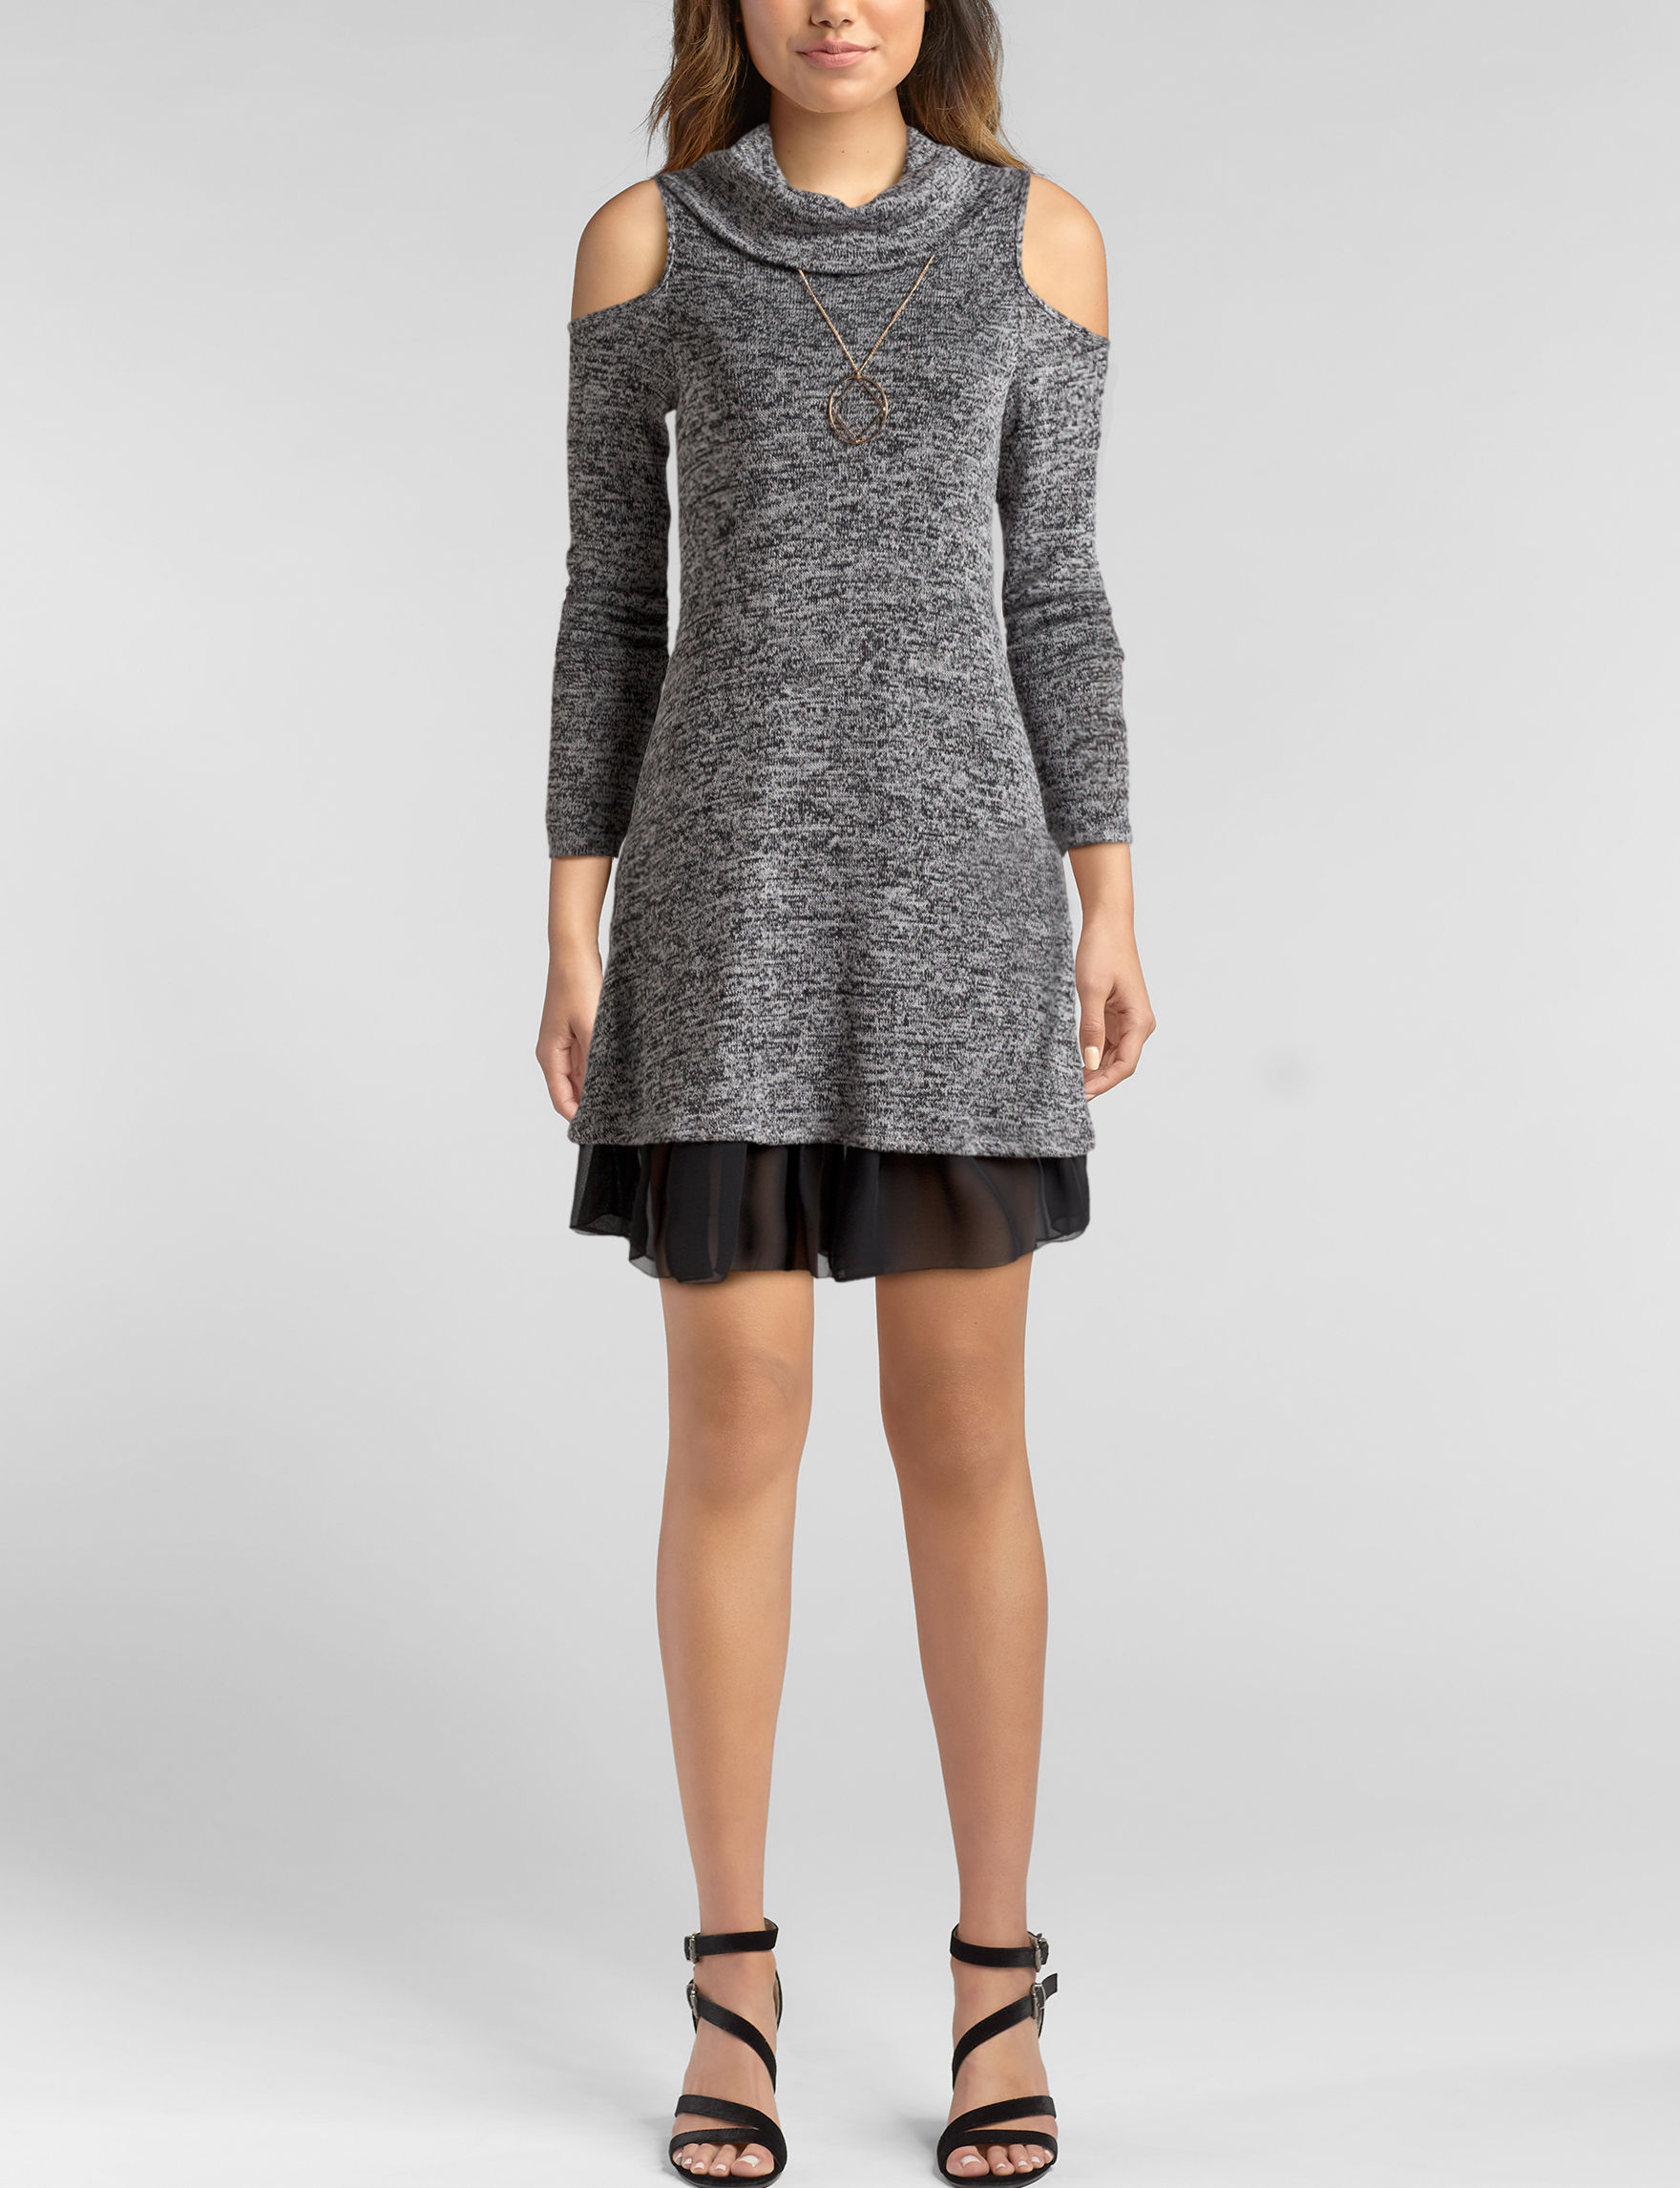 Bailey Blue Black Everyday & Casual Shift Dresses Sweater Dresses